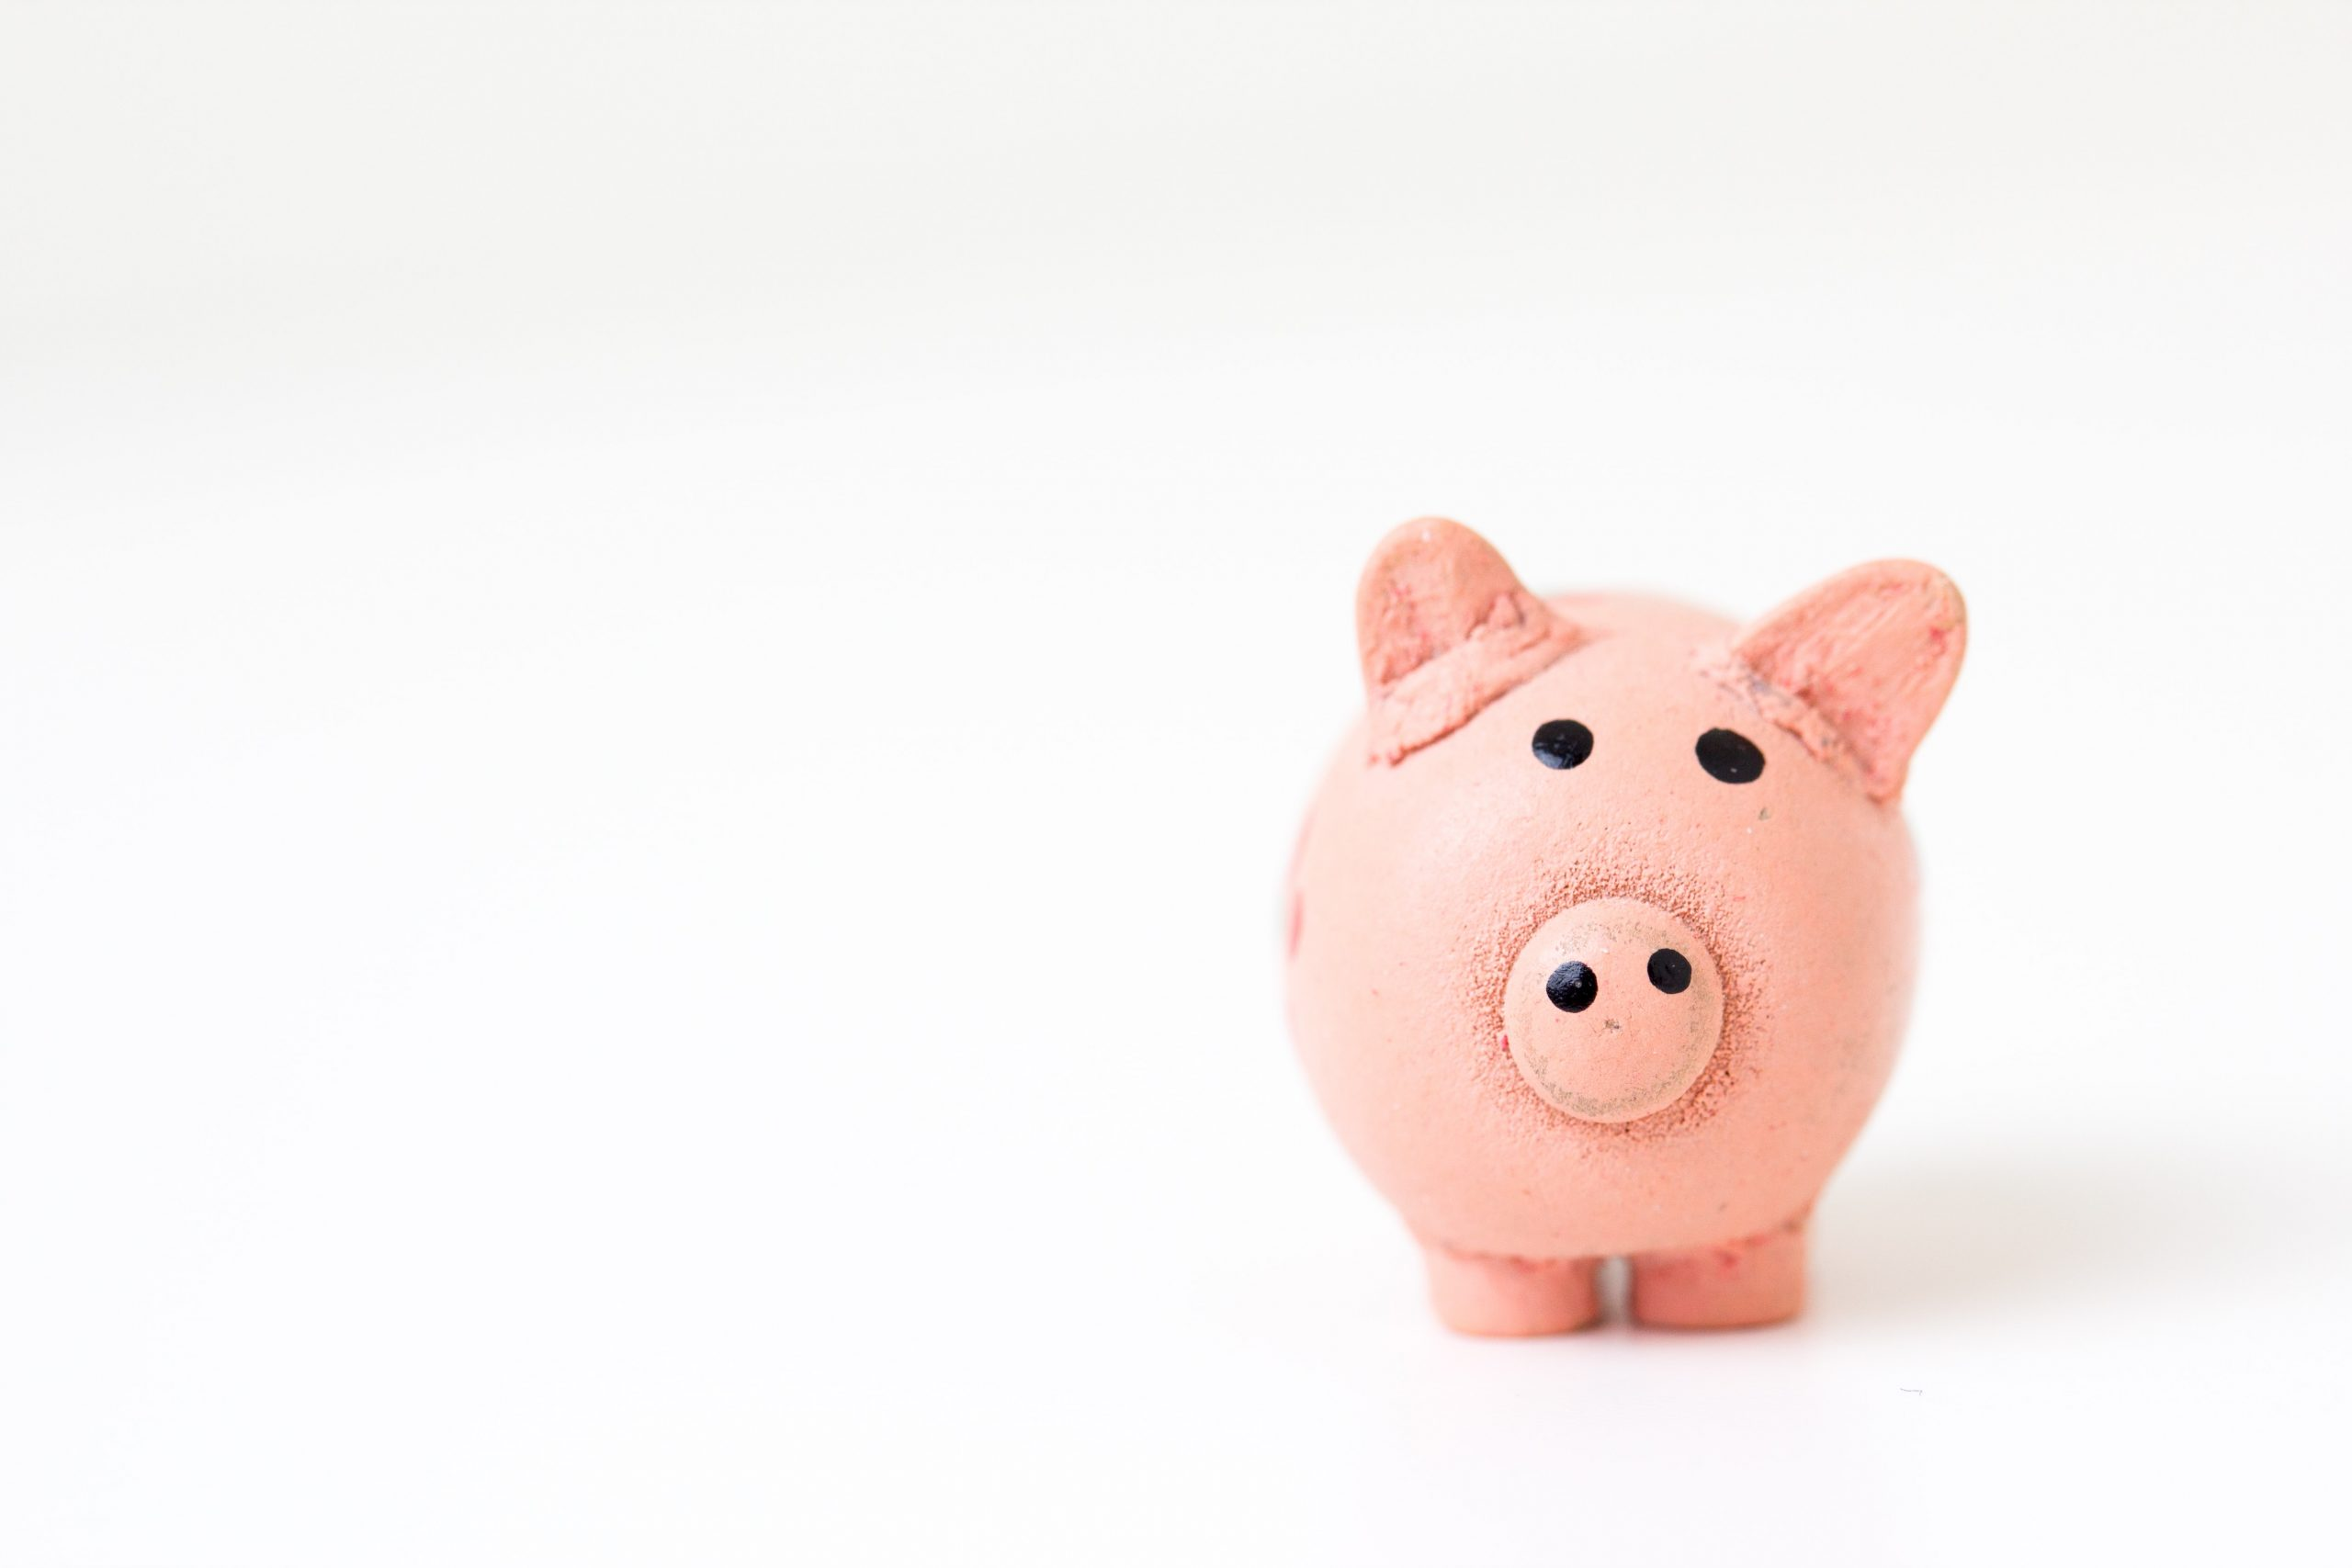 Pink piggy bank. How to Create a Budget. Photo by Fabian Blank on Unsplash